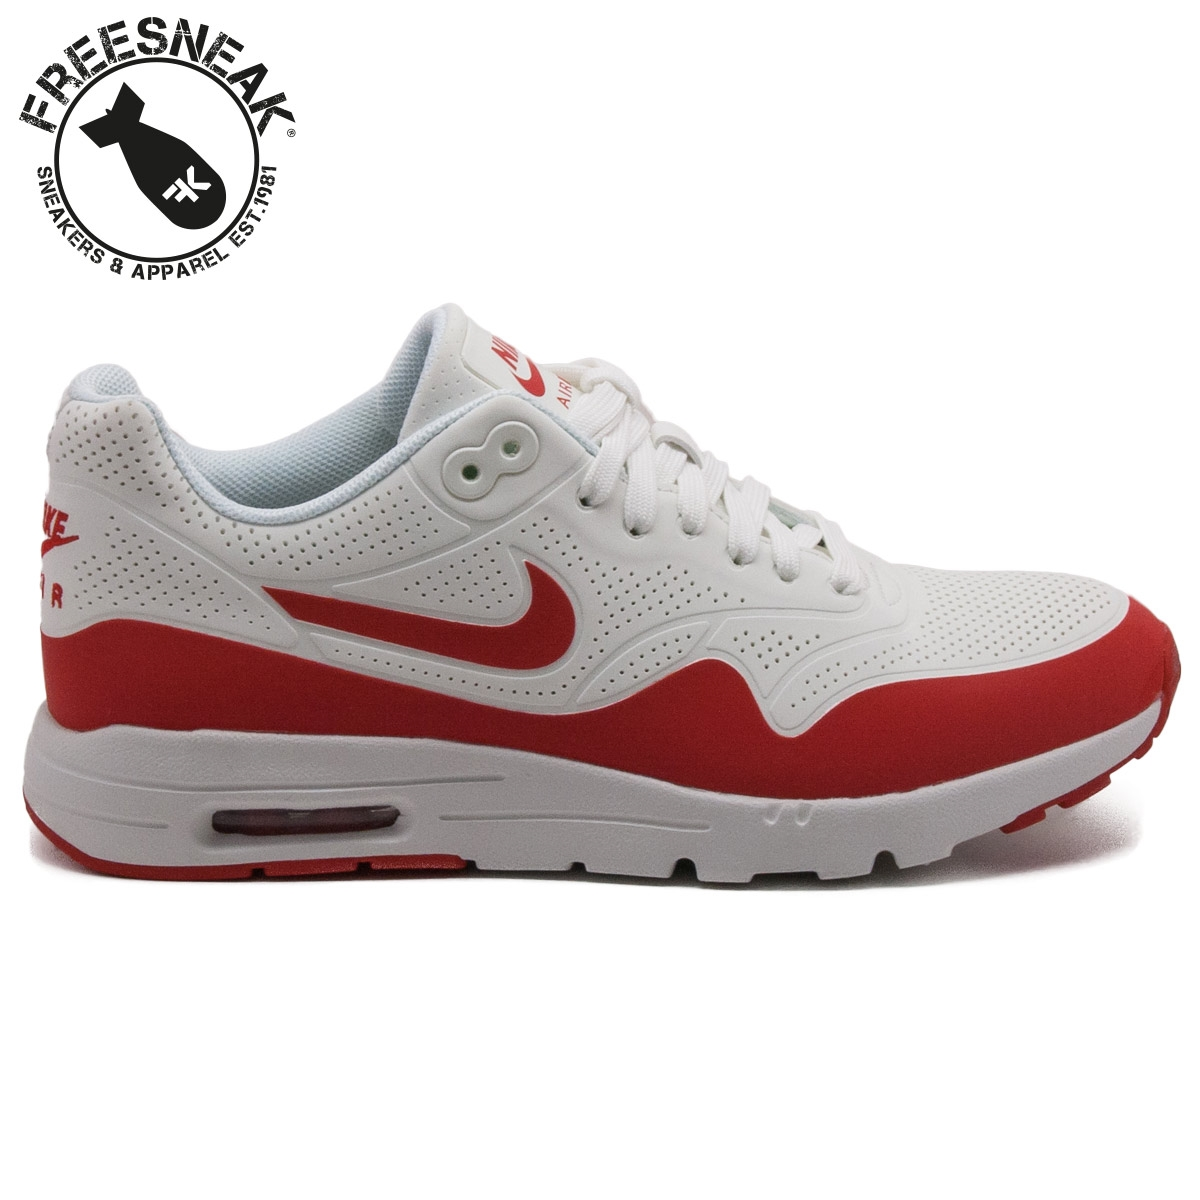 air max 1 moire ultra rosso air force nike panier. Black Bedroom Furniture Sets. Home Design Ideas